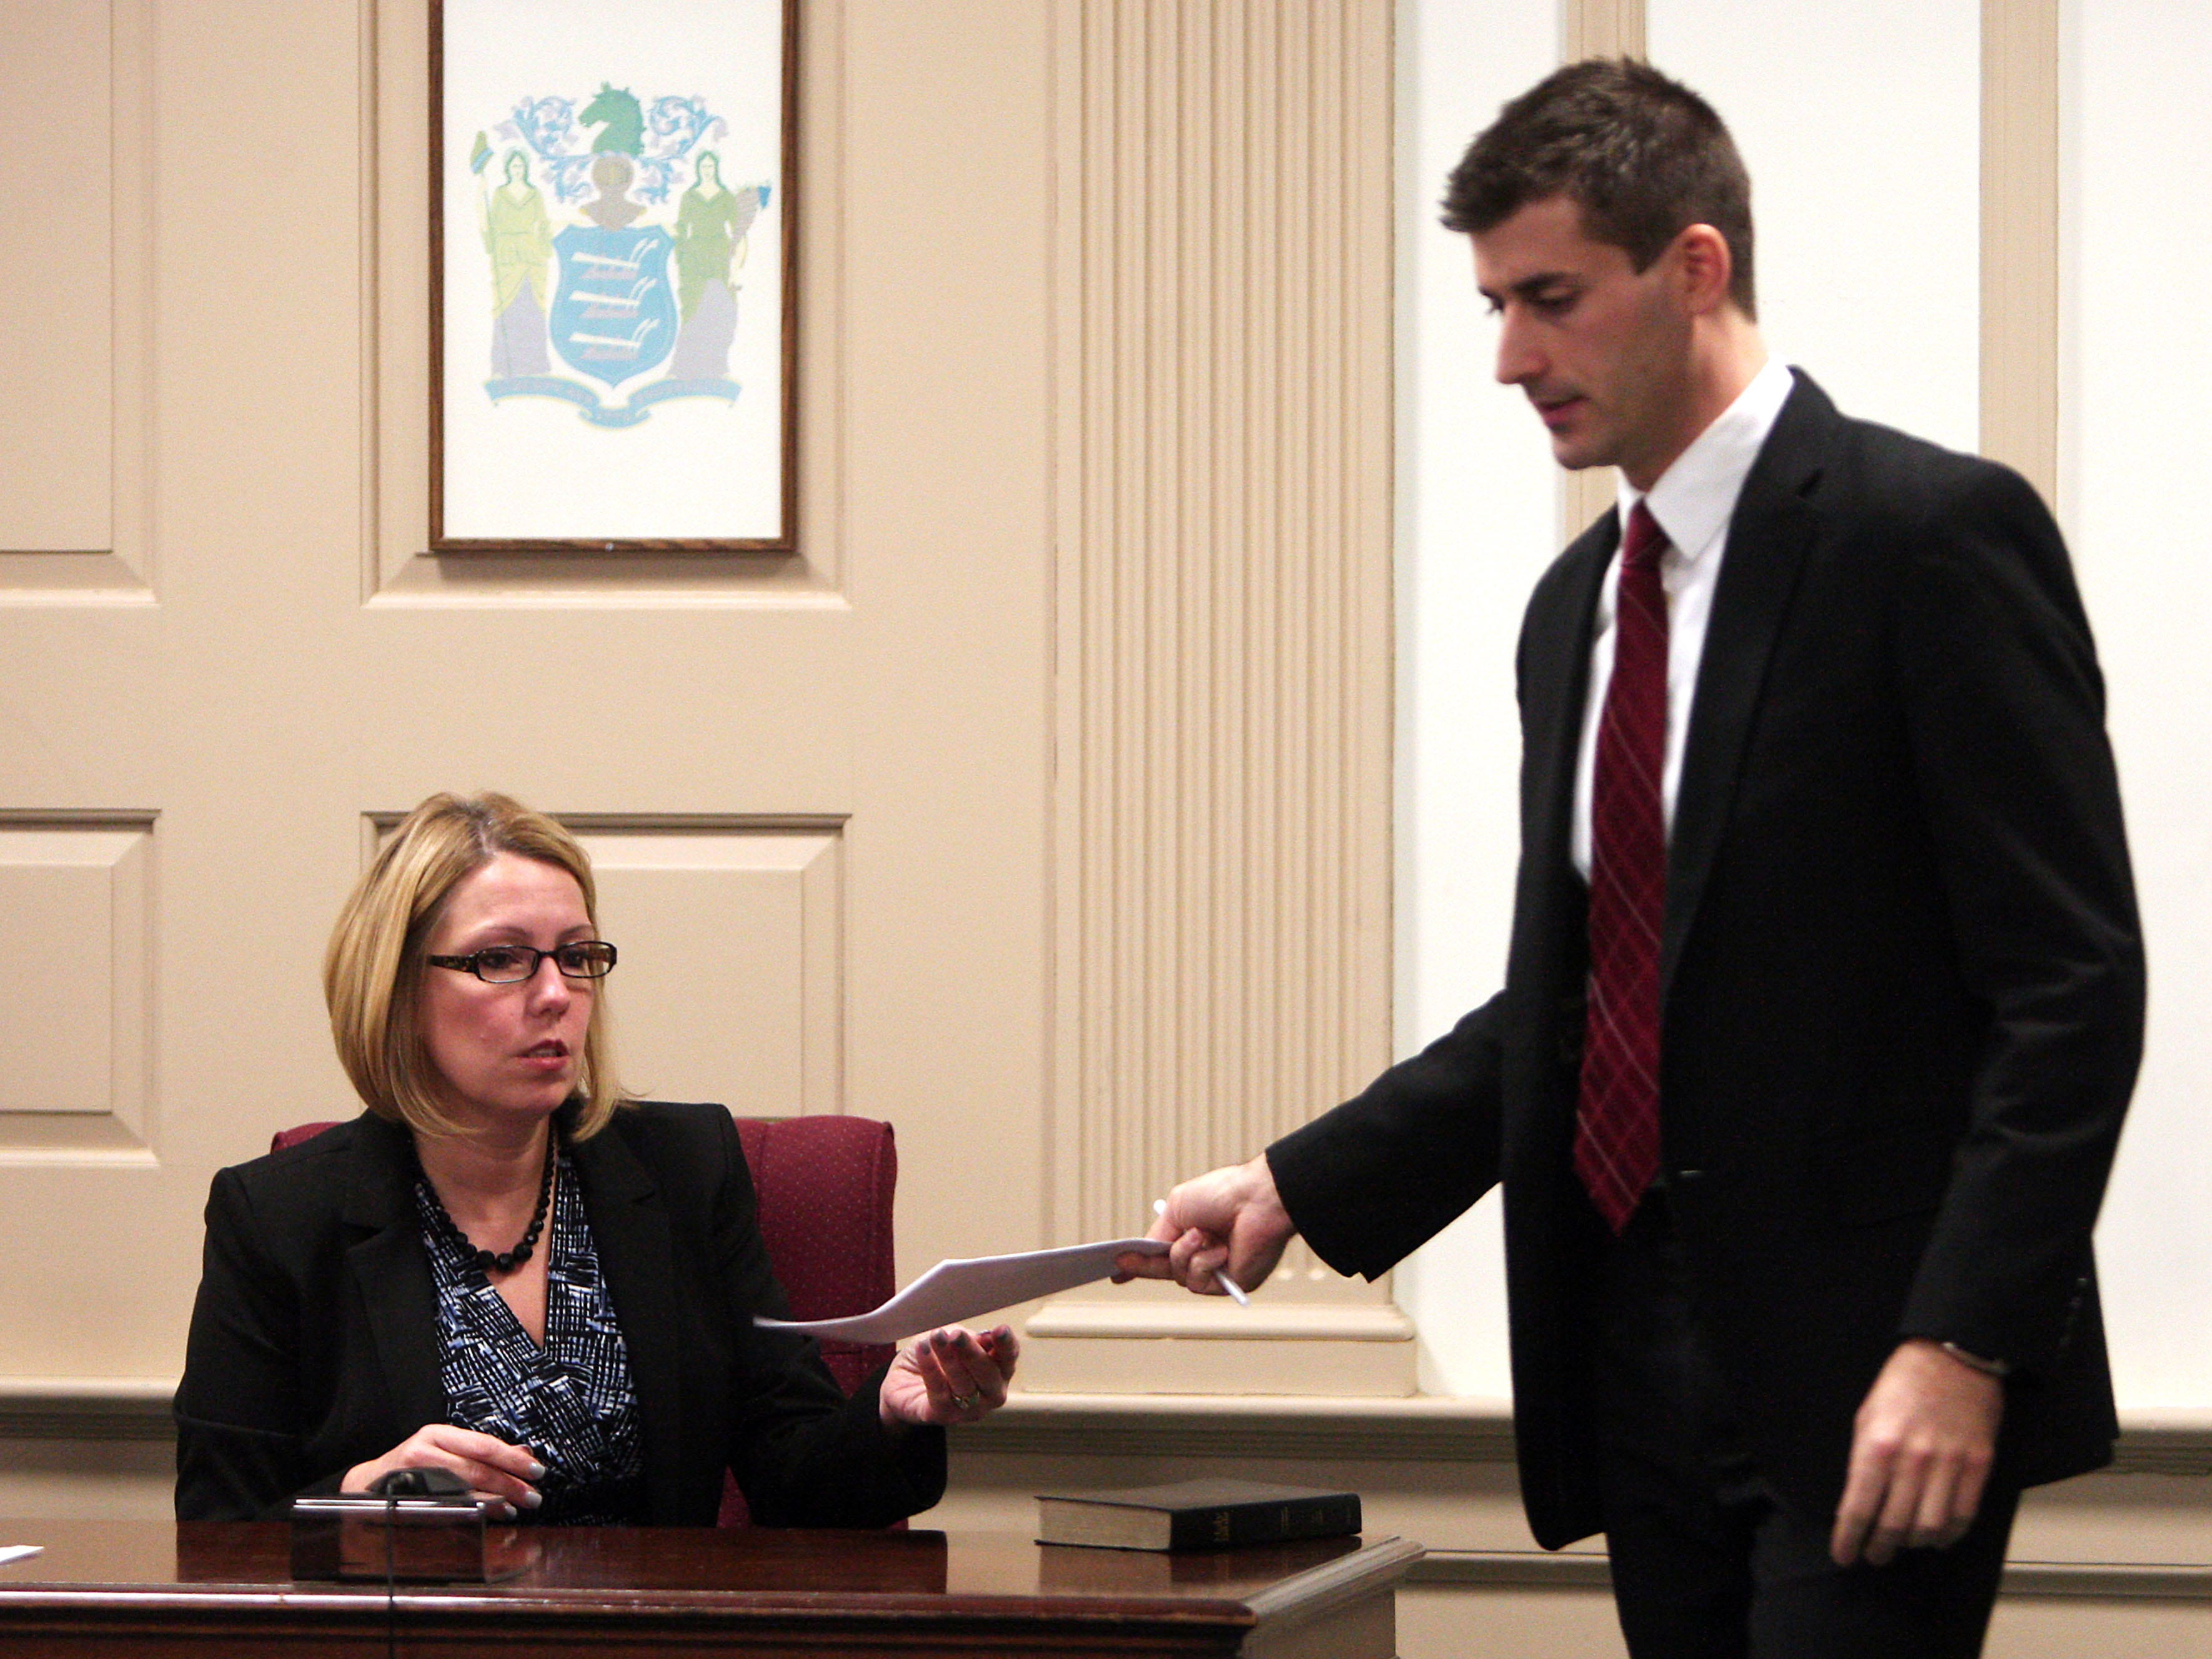 Morristown, N.J.- January 16, 2013---Butler Police Detective Colleen Pascale answers questions during direct examination from Morris County Assistant Prosecutor Matthew Troiano during the State vs. Amalia Mirasola on trial charged with the shooting death of her husband in their Butler home in 2010. Mirasola, 47, is seriously debilitated today by multiple sclerosis, which was less severe at the time of the shooting. 